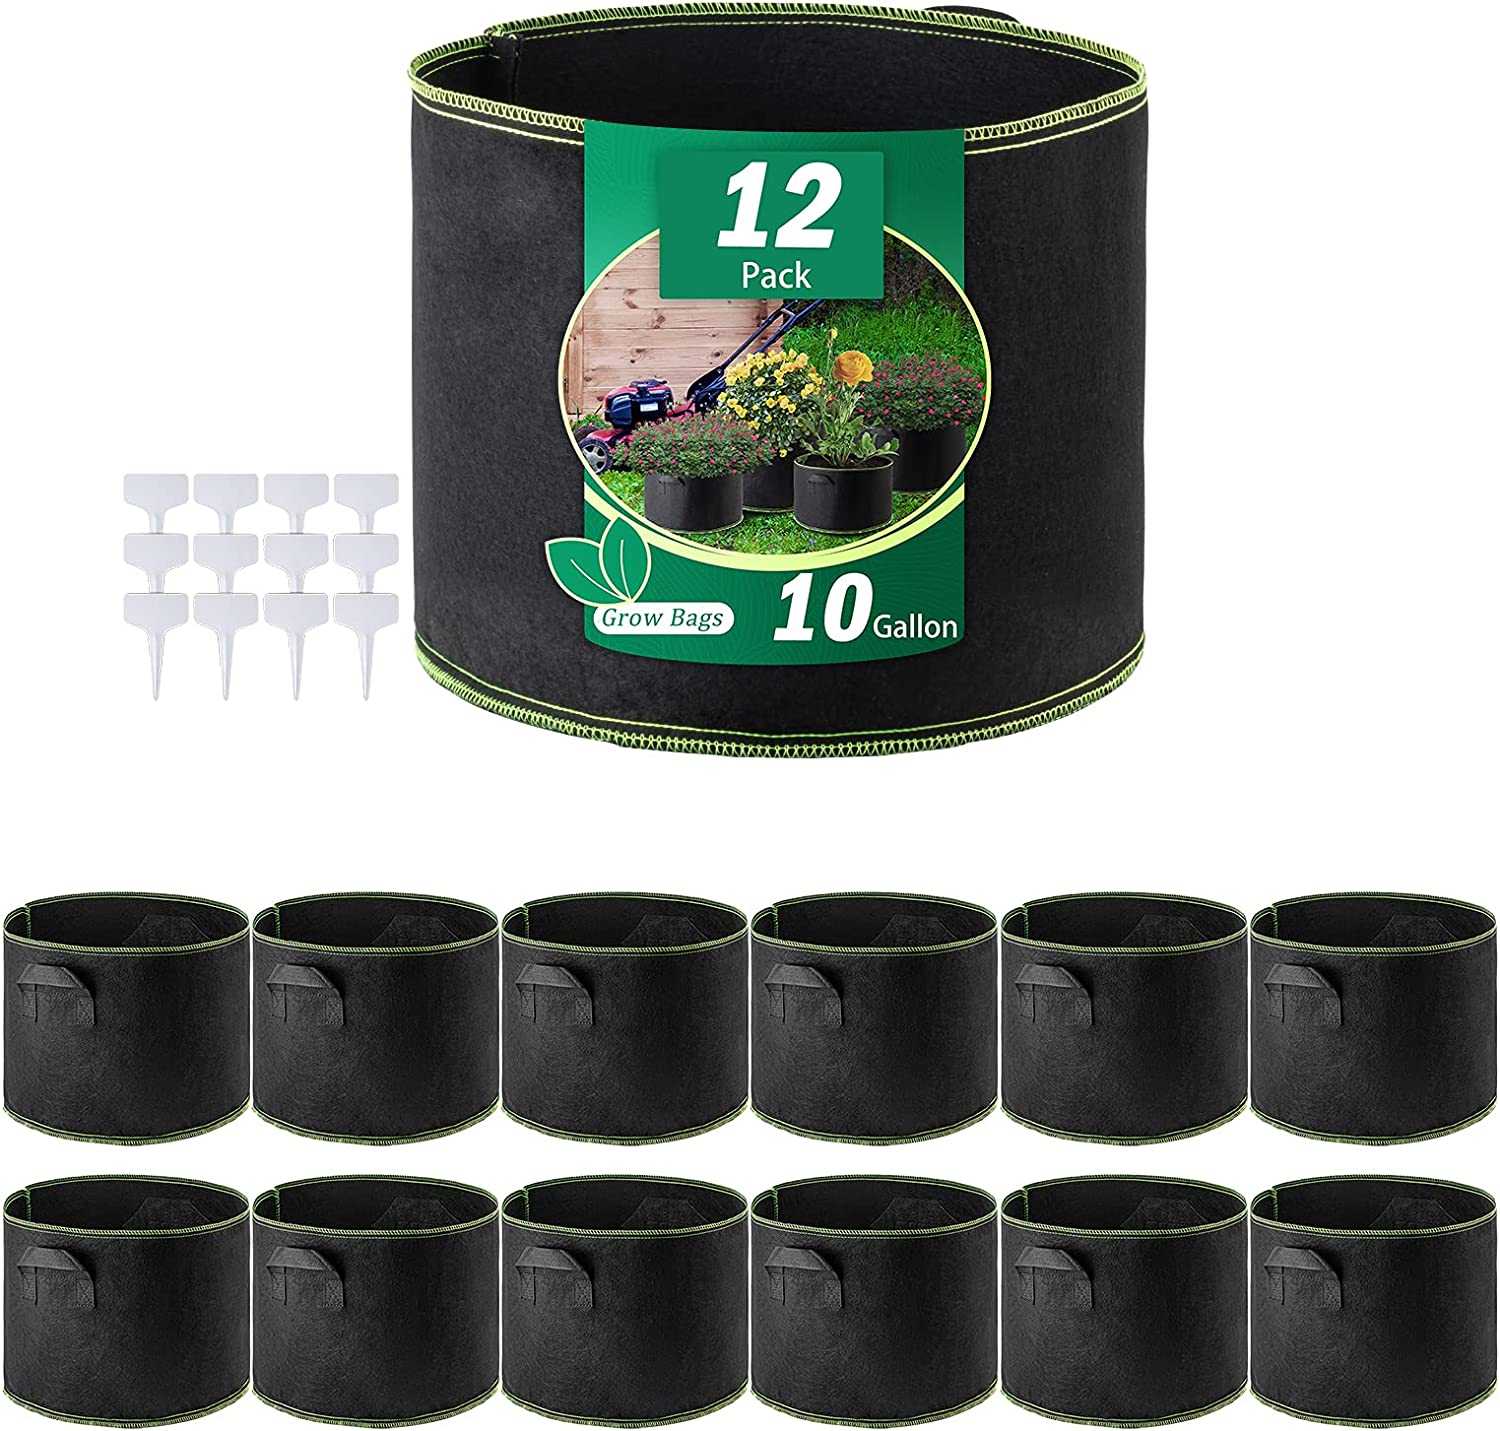 Future Way 10 Gallon Grow Bags with Plant Labels, Heavy Duty Fabric Pots with Handles, 12-Pack